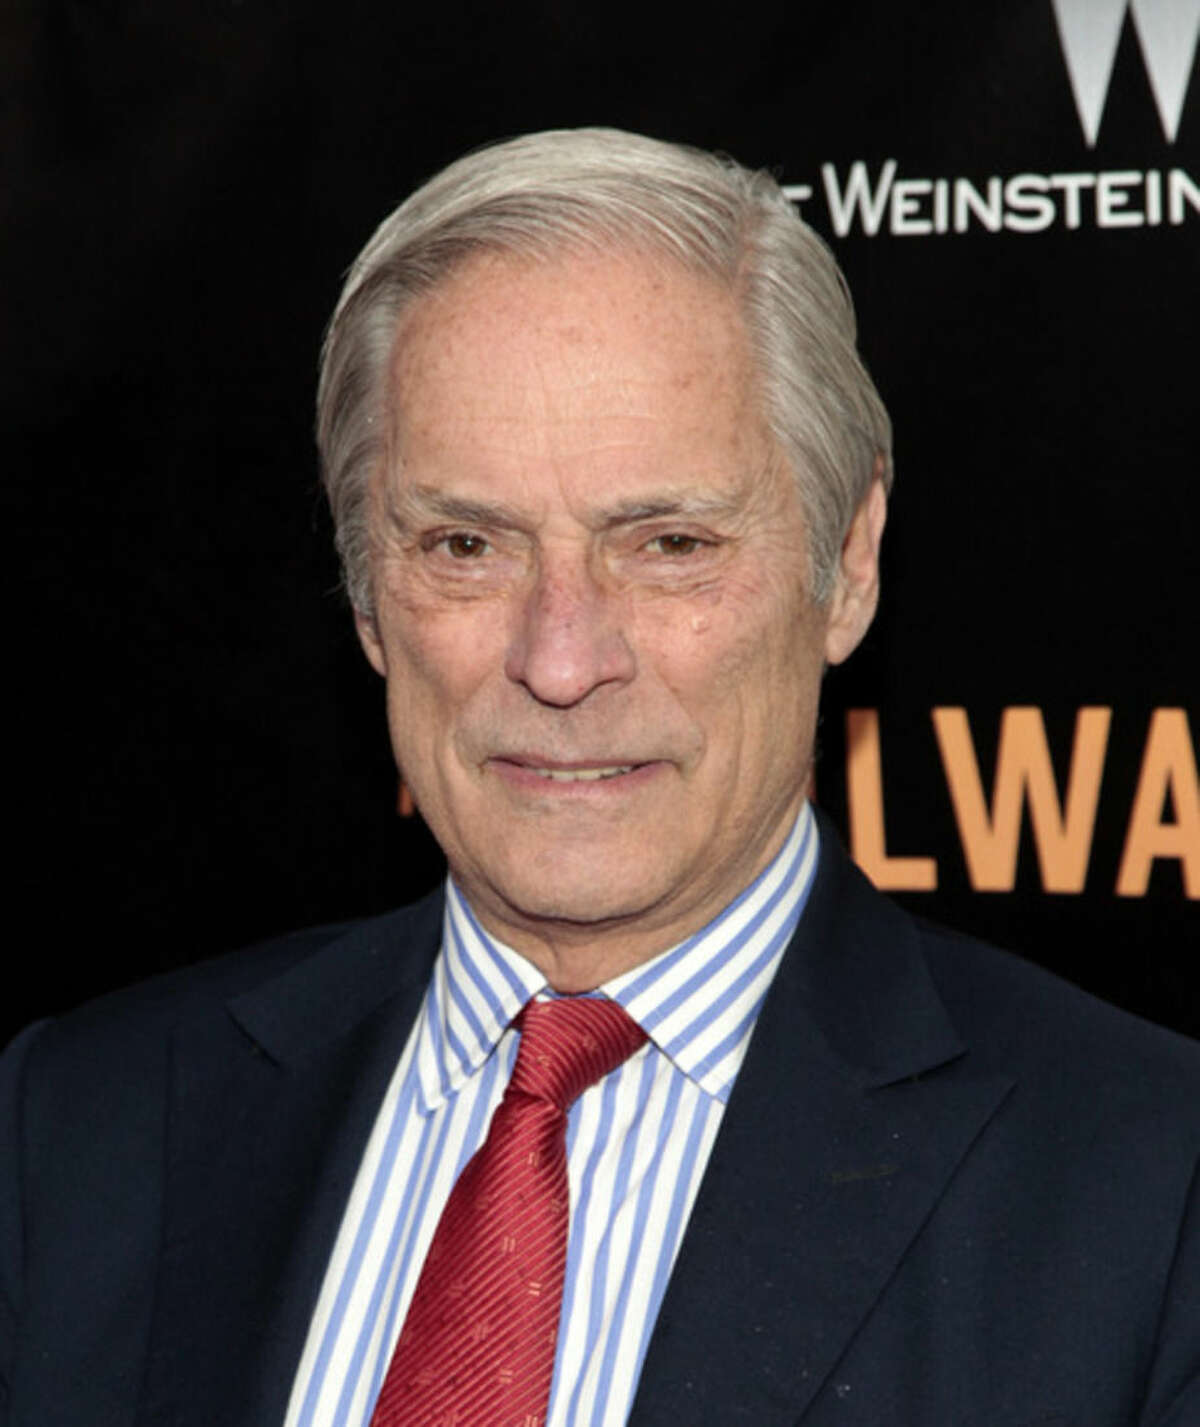 """FILE - In this April 7, 2014 file photo, Bob Simon of """"60 Minutes,"""" attends the New York premiere of """"The Railway Man"""" in New York. CBS says Simon was killed in a car crash on Wednesday, Feb. 11, 2015, in Manhattan. Police say a town car in which he was a passenger hit another car. He was 73. (Photo by Andy Kropa/Invision/AP, File)"""